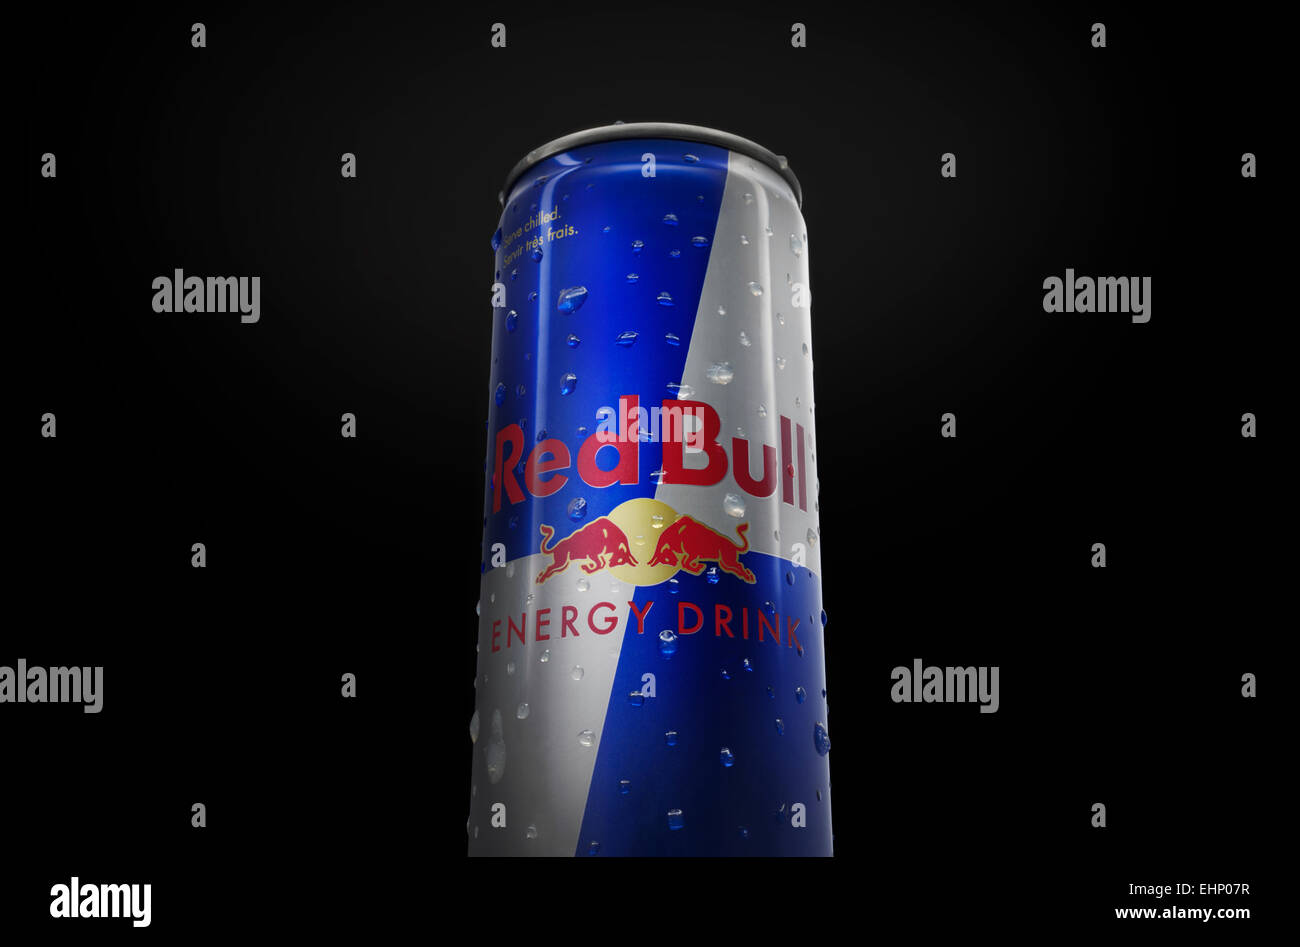 Red Bull Kuehlschrank Dose : Flasche dose red bull energy drink stockfotos flasche dose red